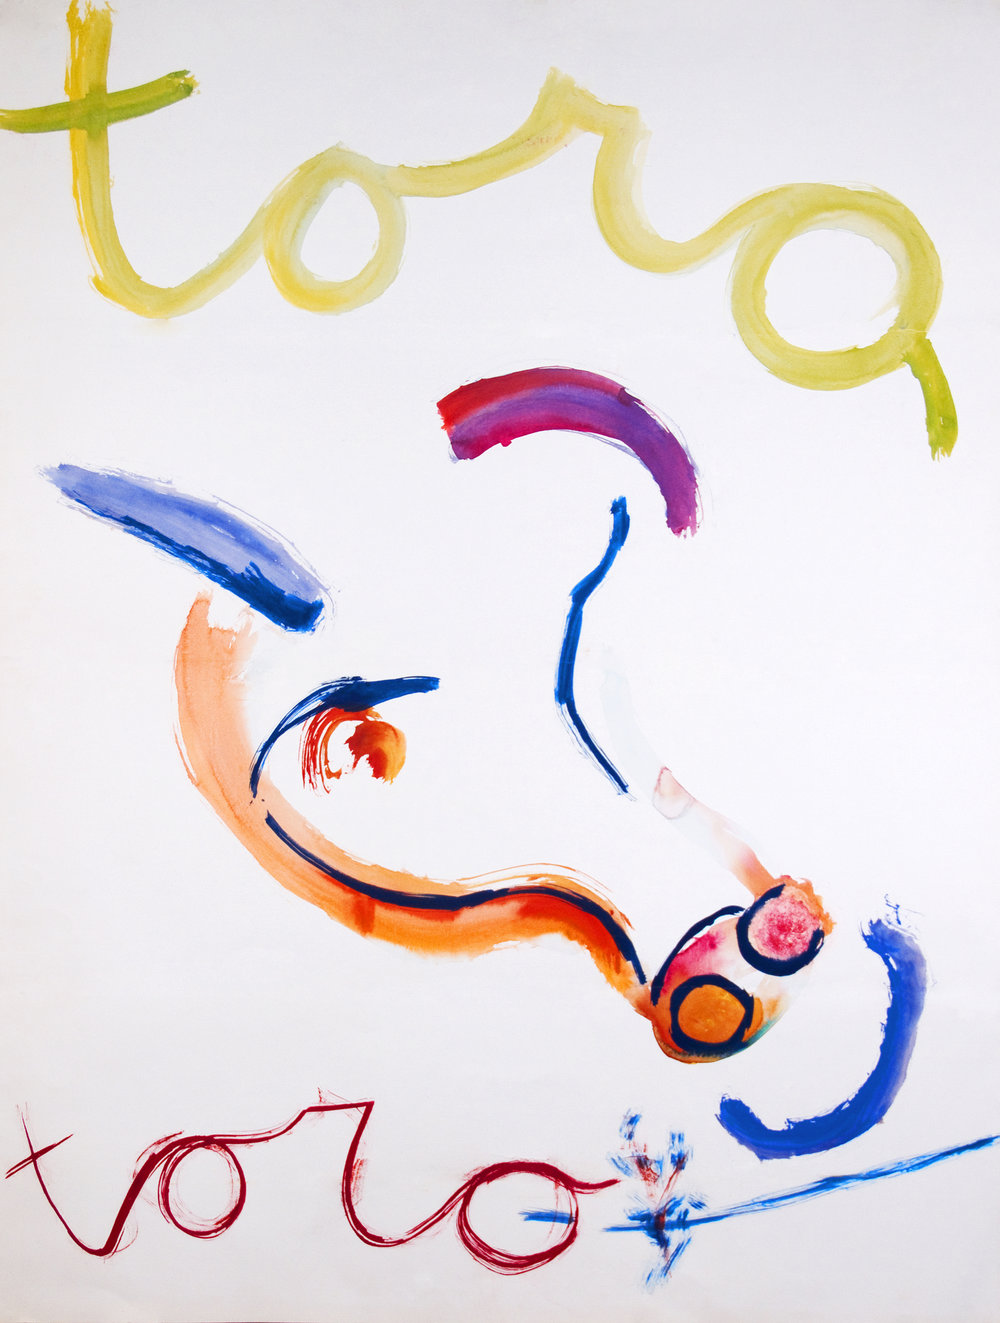 TORO TORO Watercolor on Paper 46 x 35 inches (117 x 89 cm)